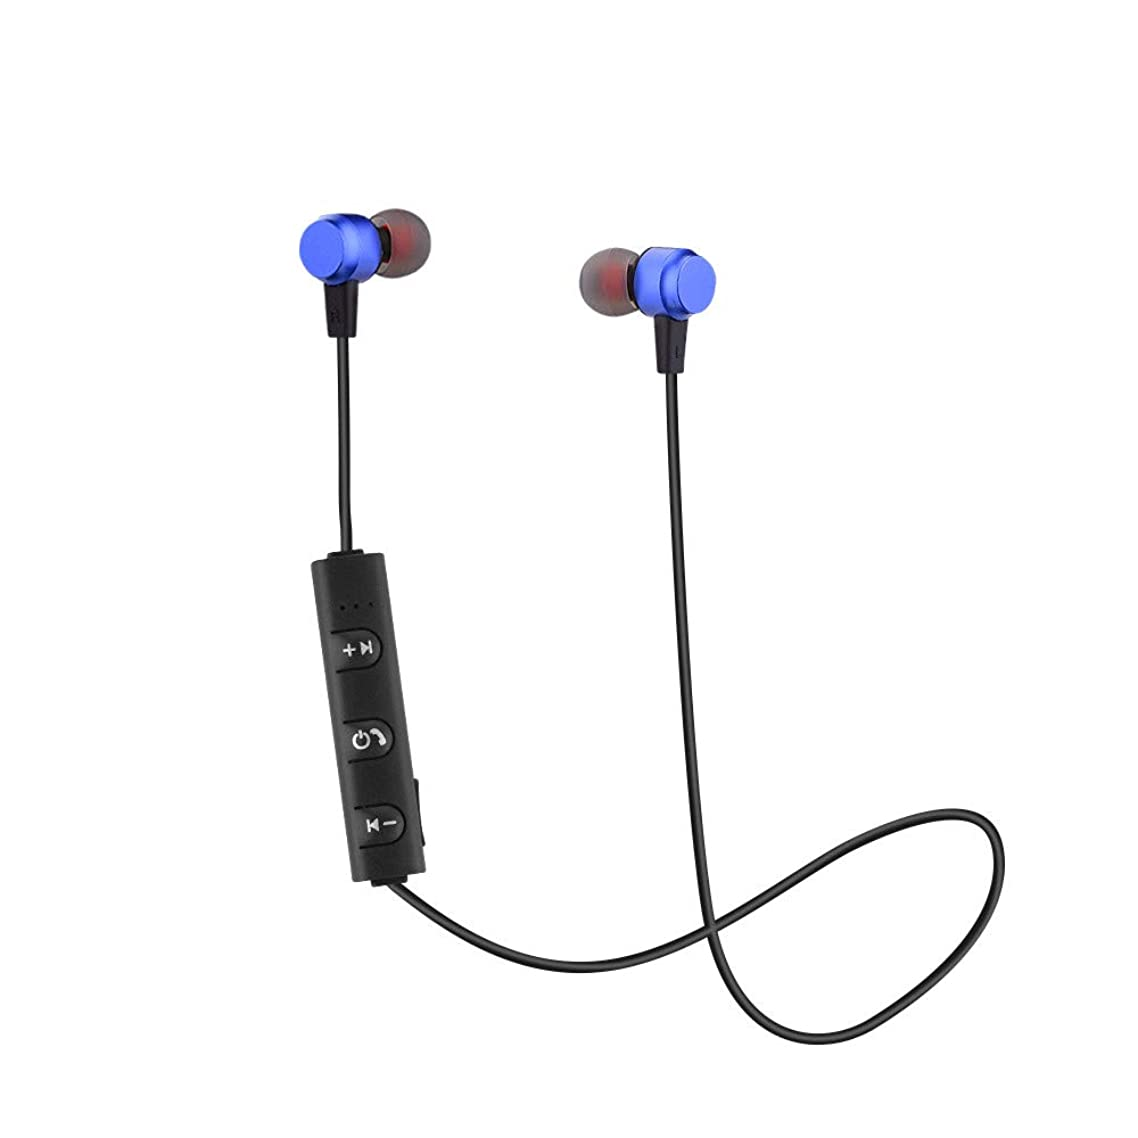 Sodoop Portable and Small Wireless Bluetooth Headset Sport Stereo Headphone Earphone for Smartphone (Blue)